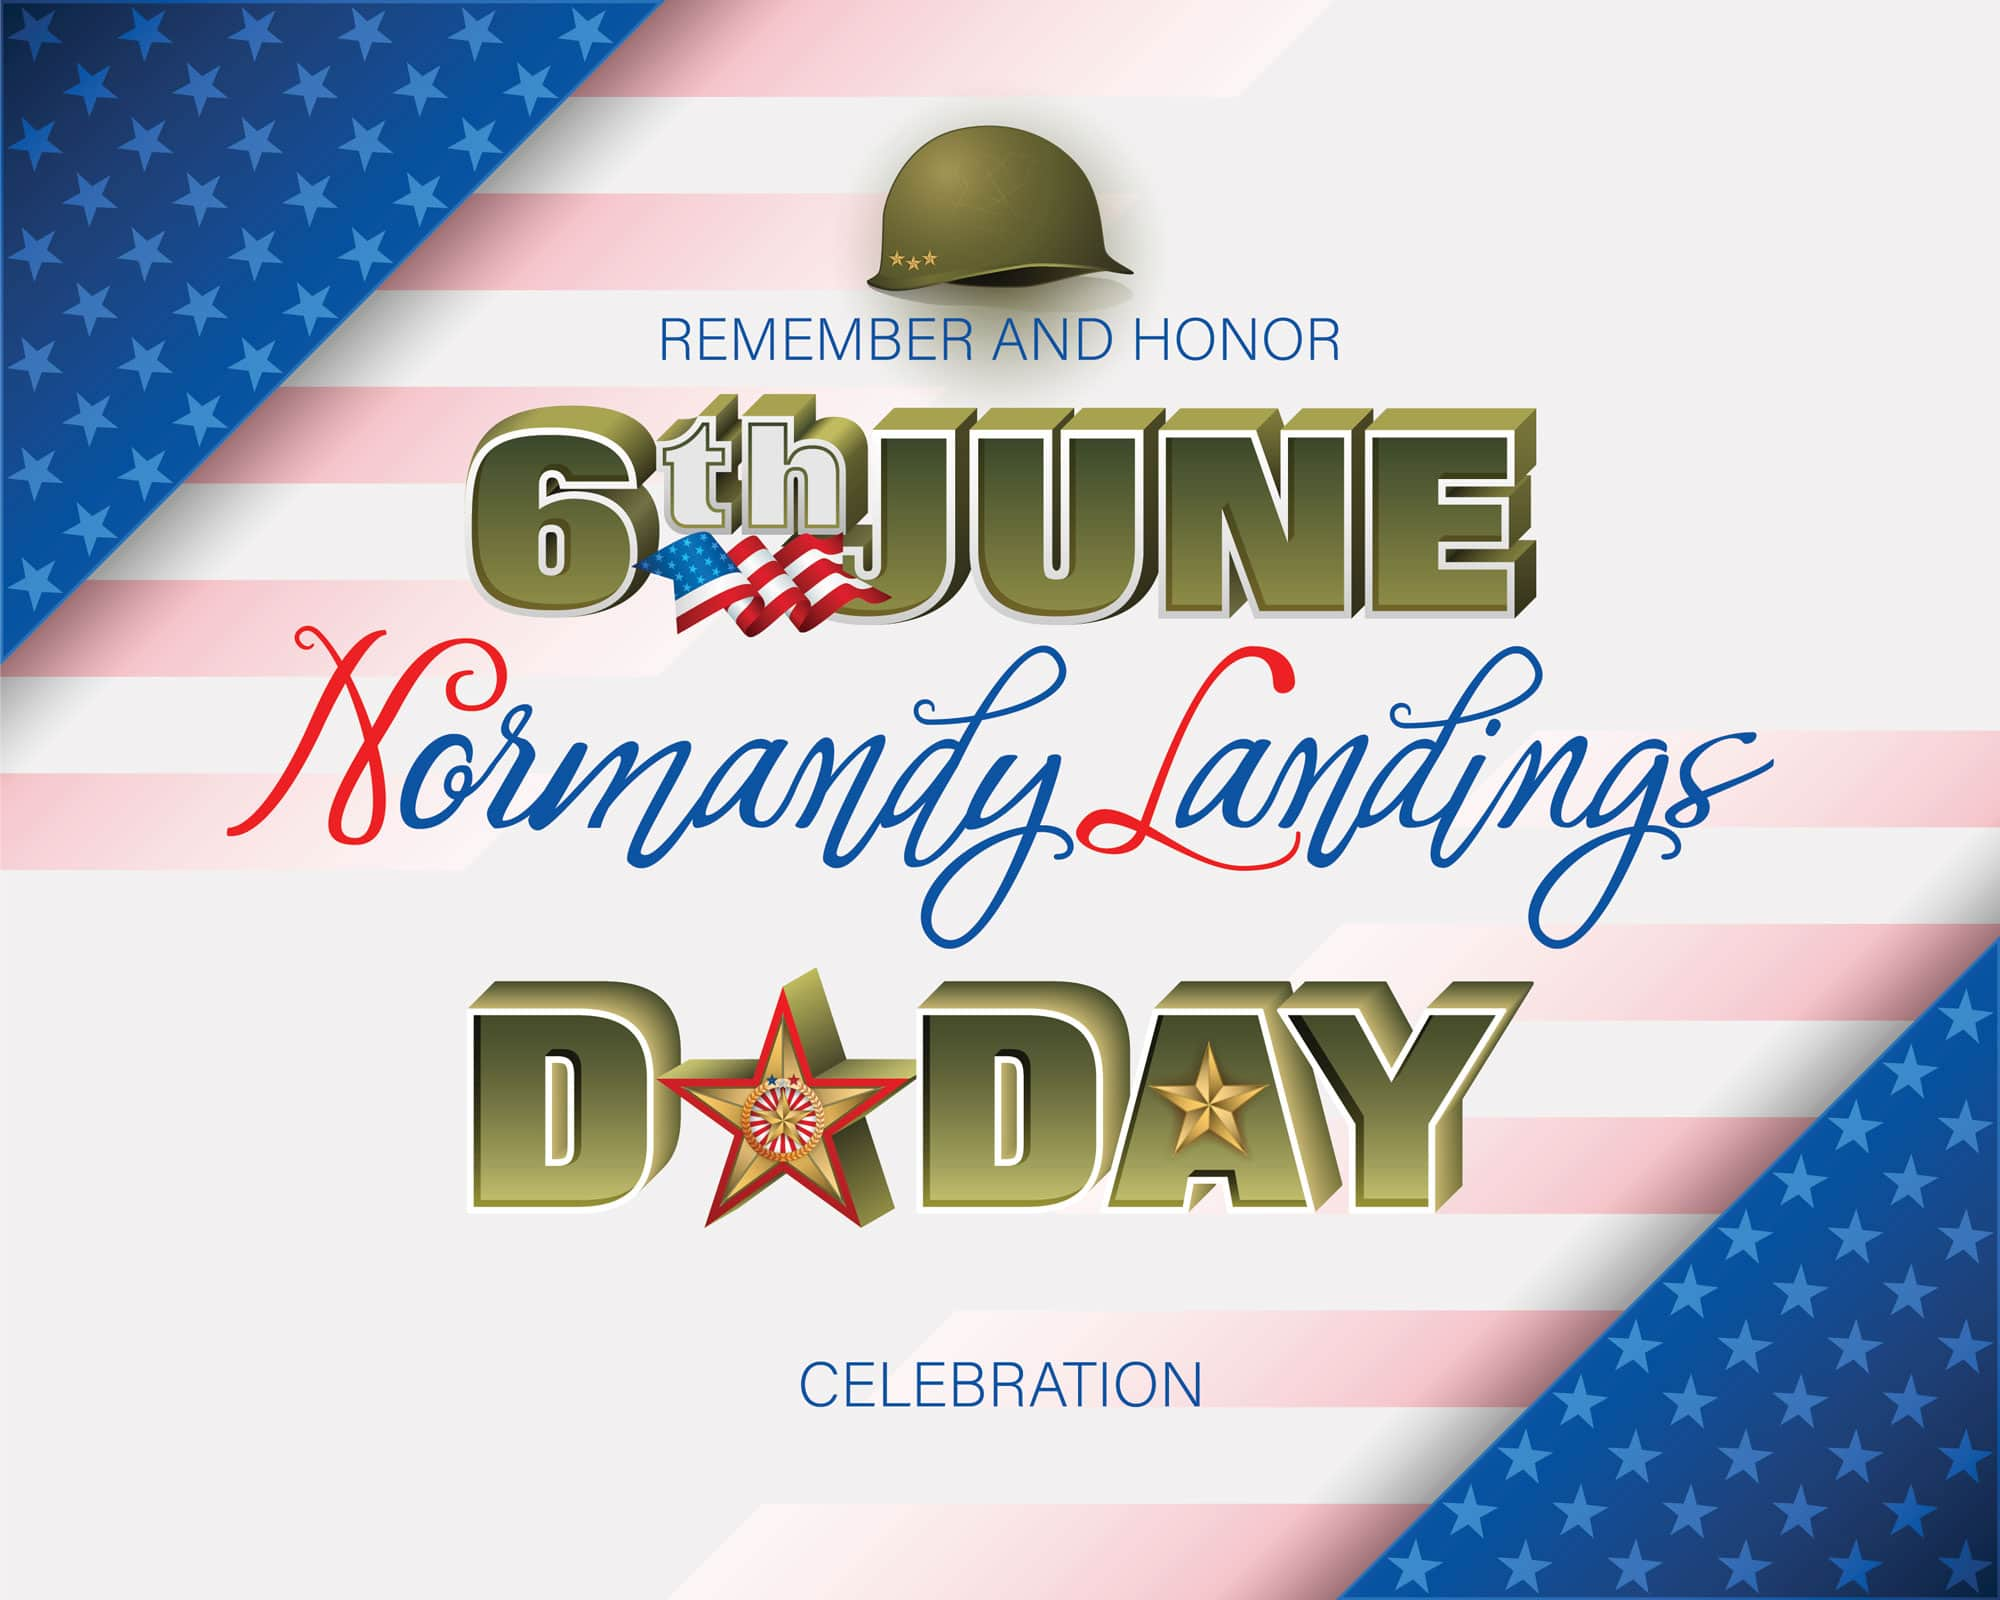 The invasion of Normandy on June 6th, 1944, known as D-Day, was one of the most significant Allied operations during the second World War.